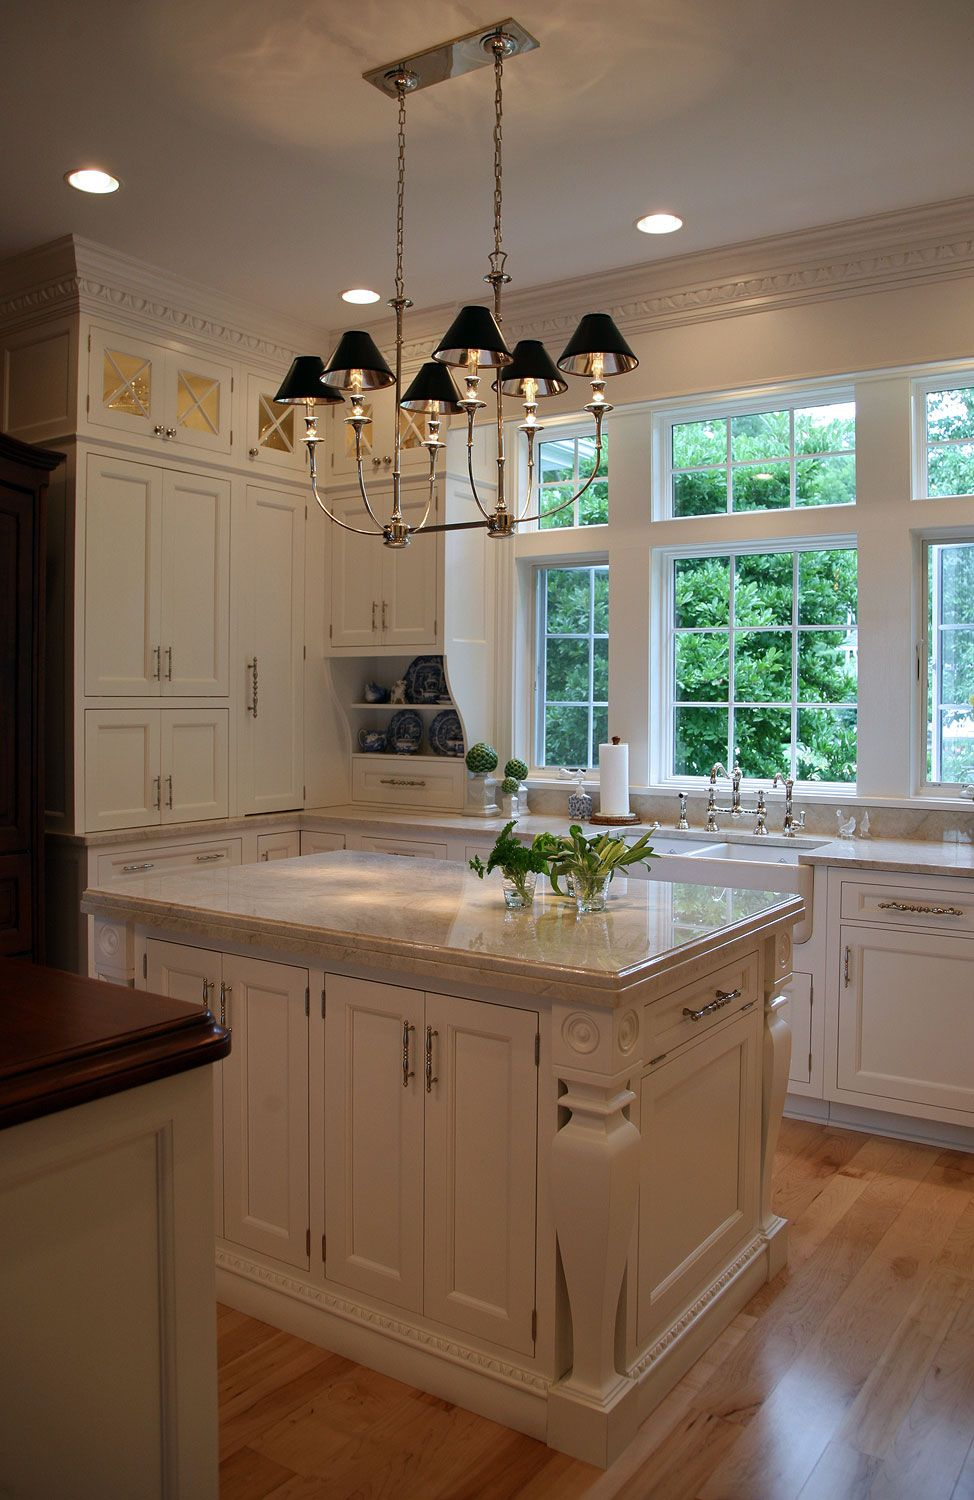 Bianco Perla Quartzite  Kitchens  Pinterest  Kitchens Alluring Interior Design Kitchen Ideas Inspiration